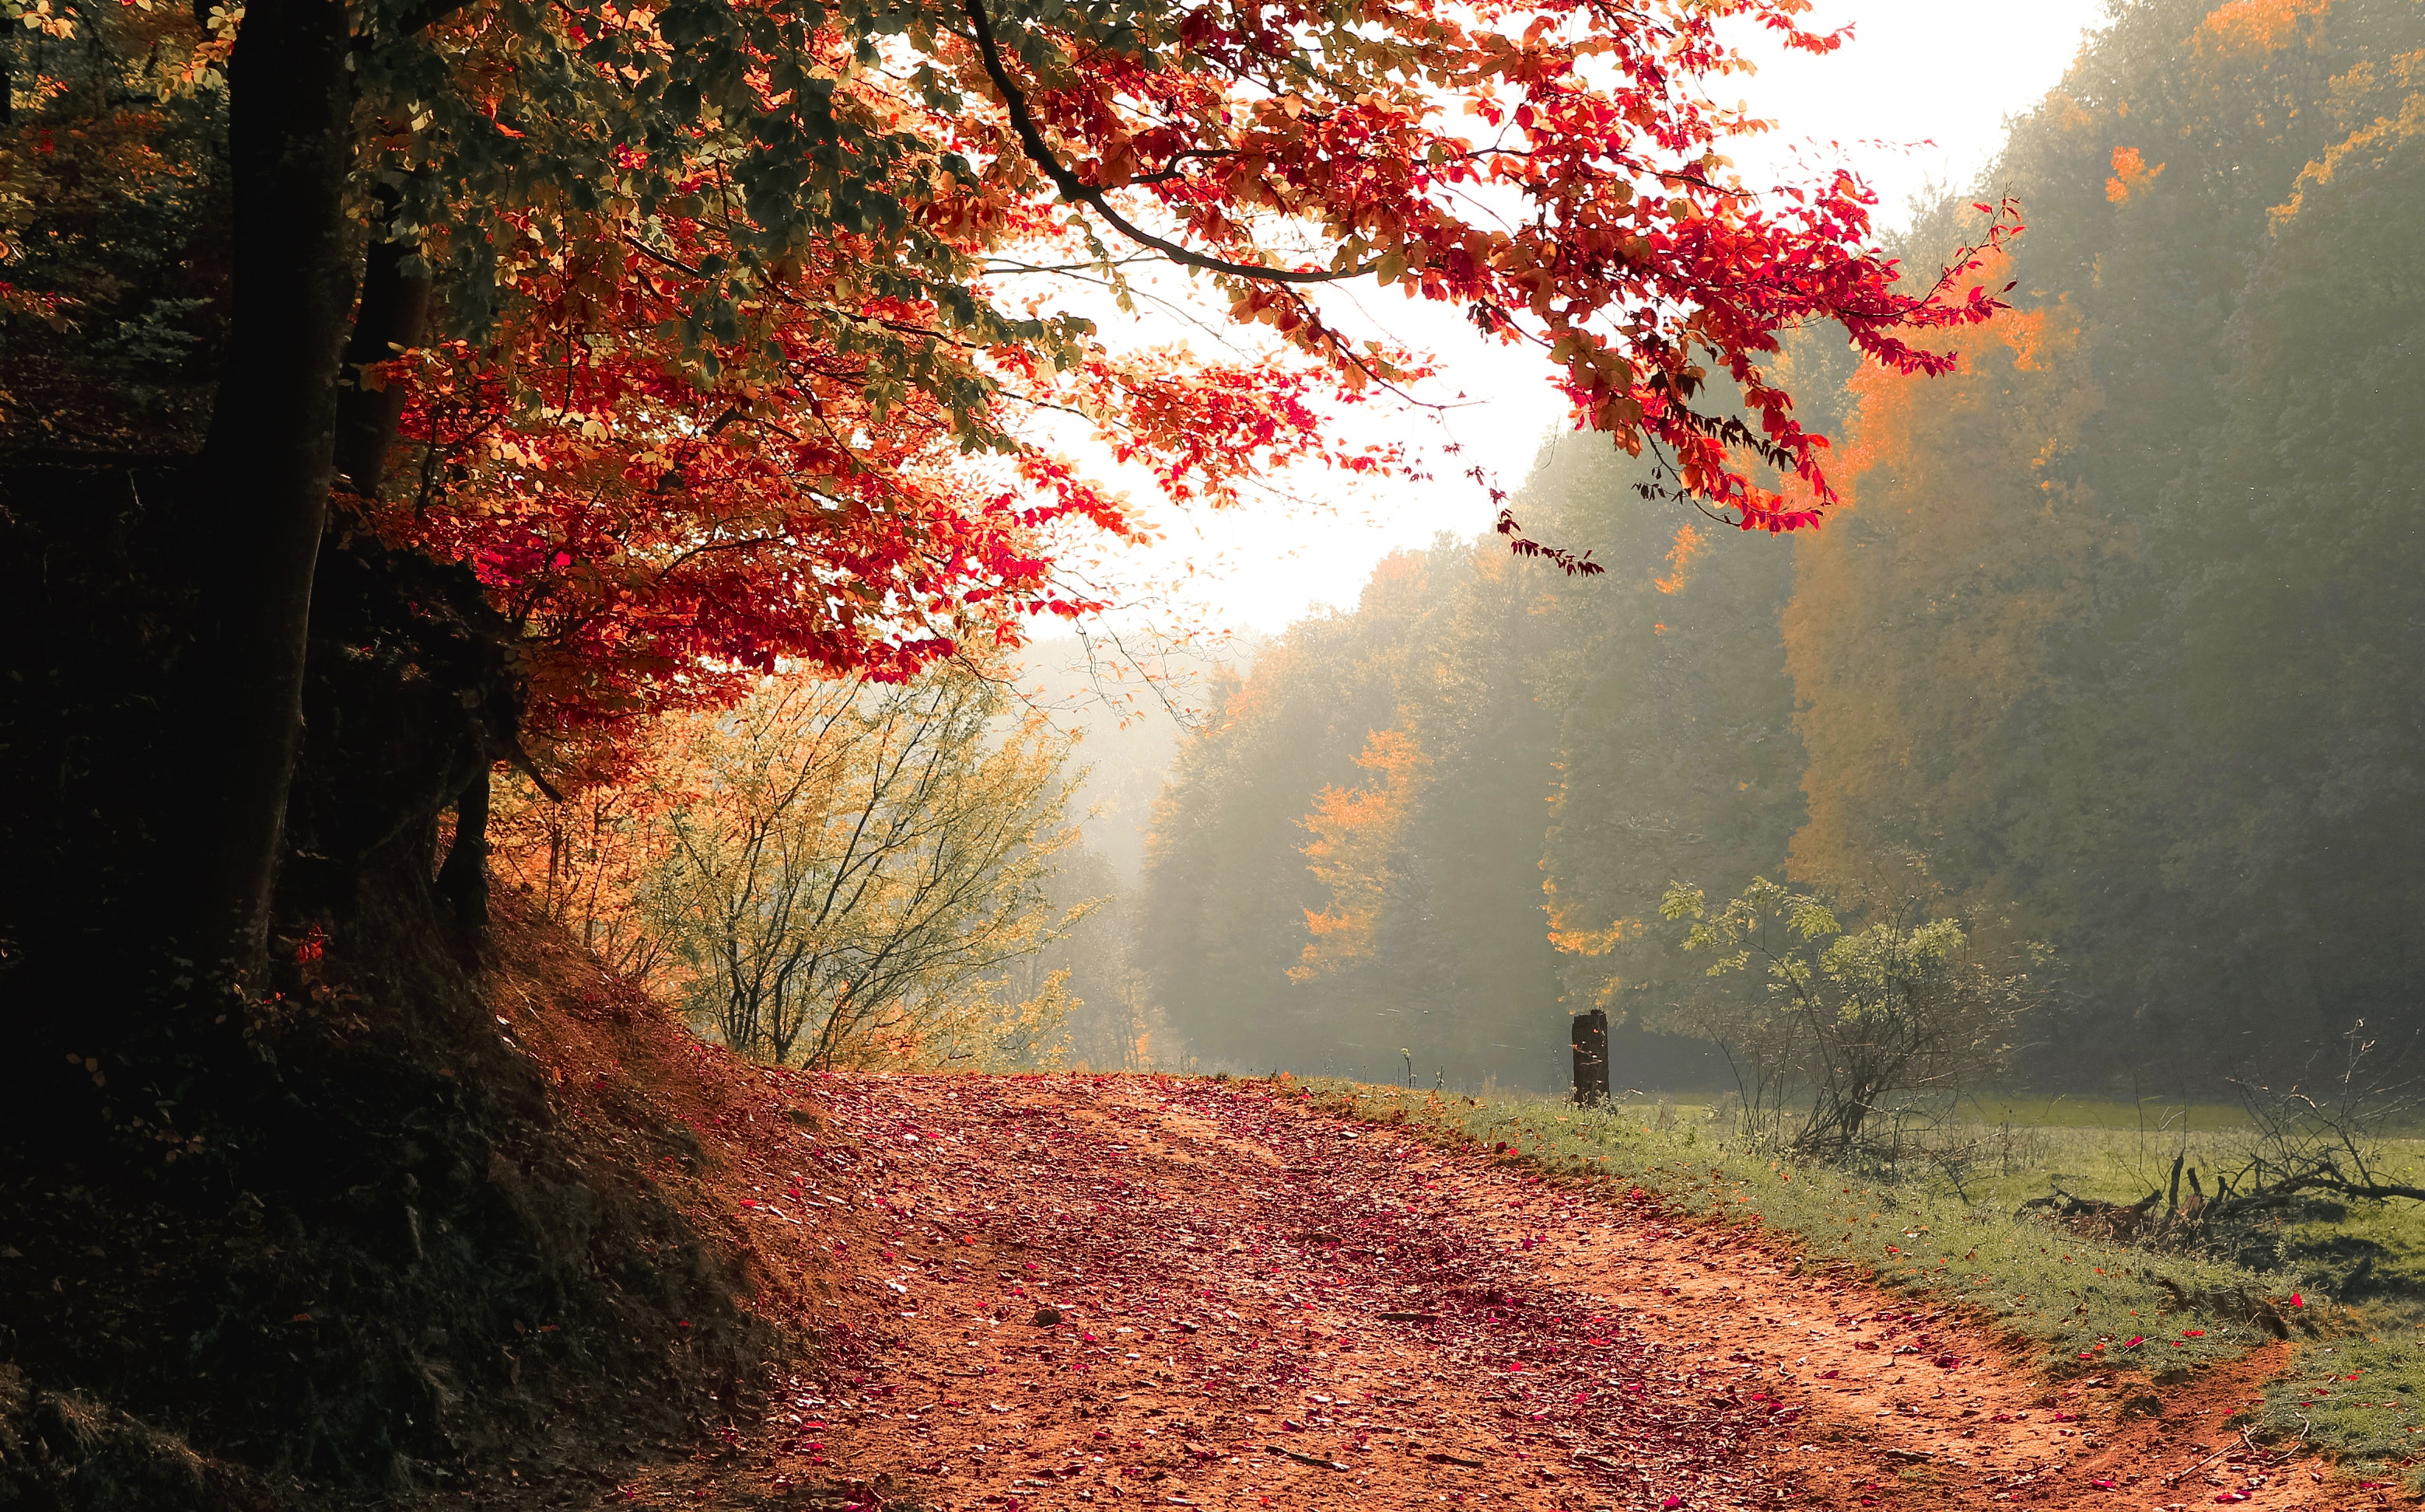 20 Creative Fall Photography Ideas - Daylight Autumn Fall by Vali S. via Pexels | http://www.roseclearfield.com